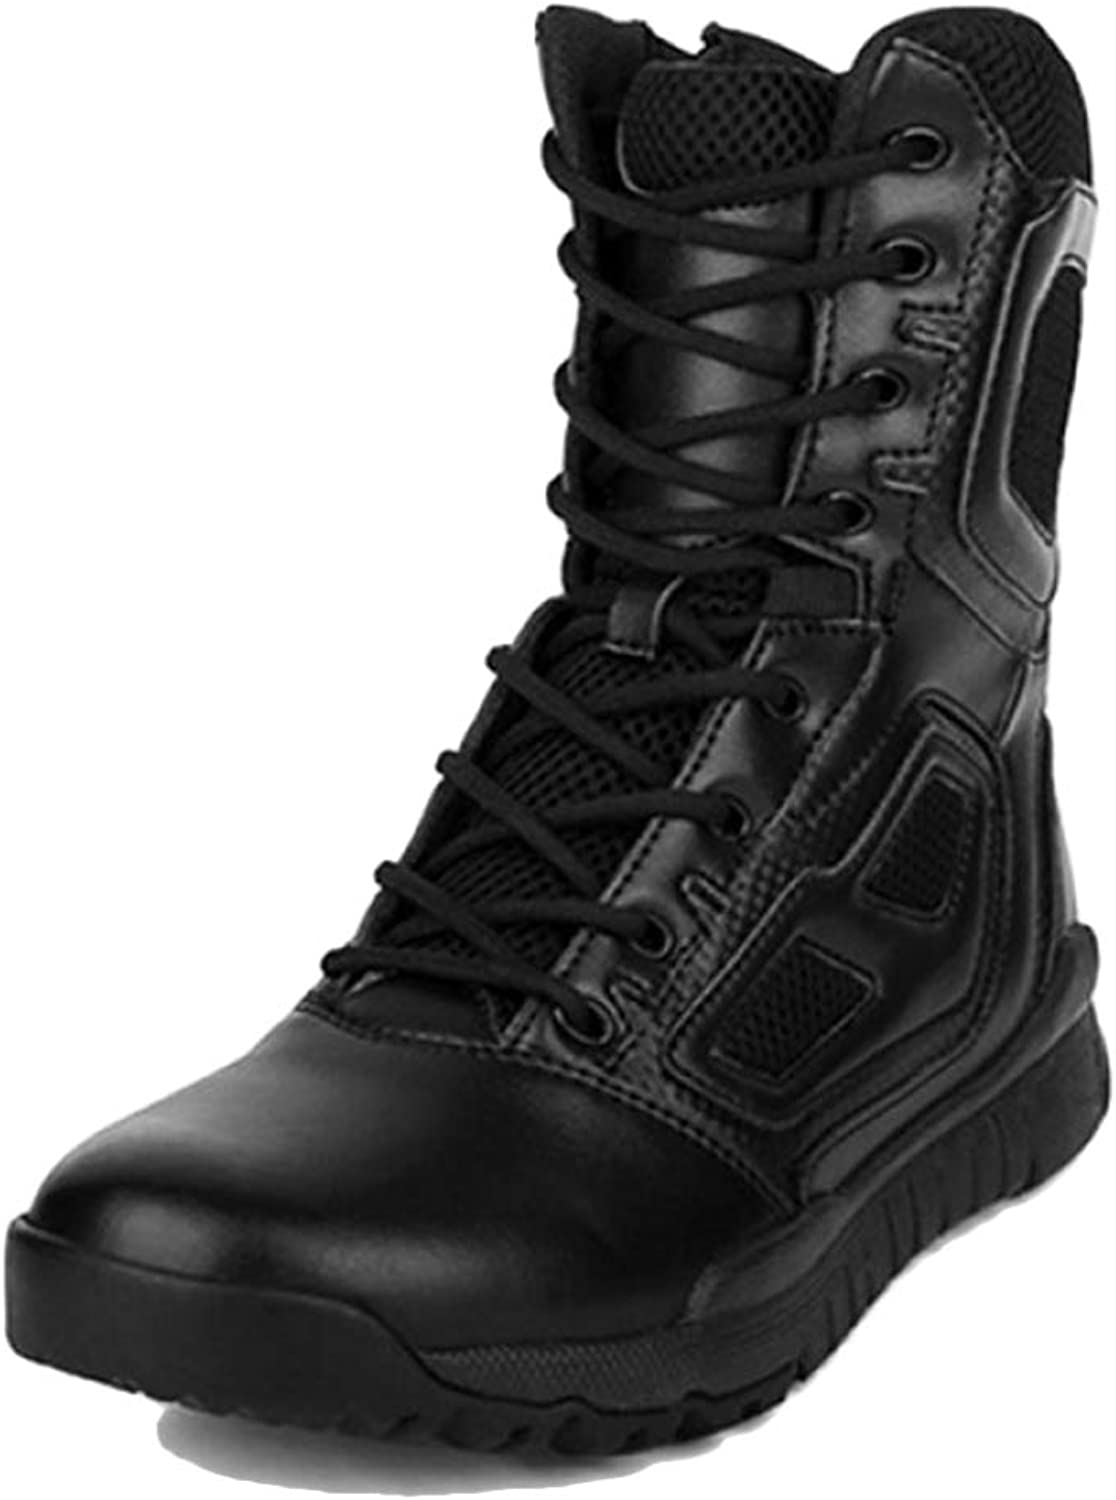 YC Outdoor Training Desert Boots For Mens Police Hiking Camping Combat Boots Safety High Tops Martin Boots Army Military Special shoes